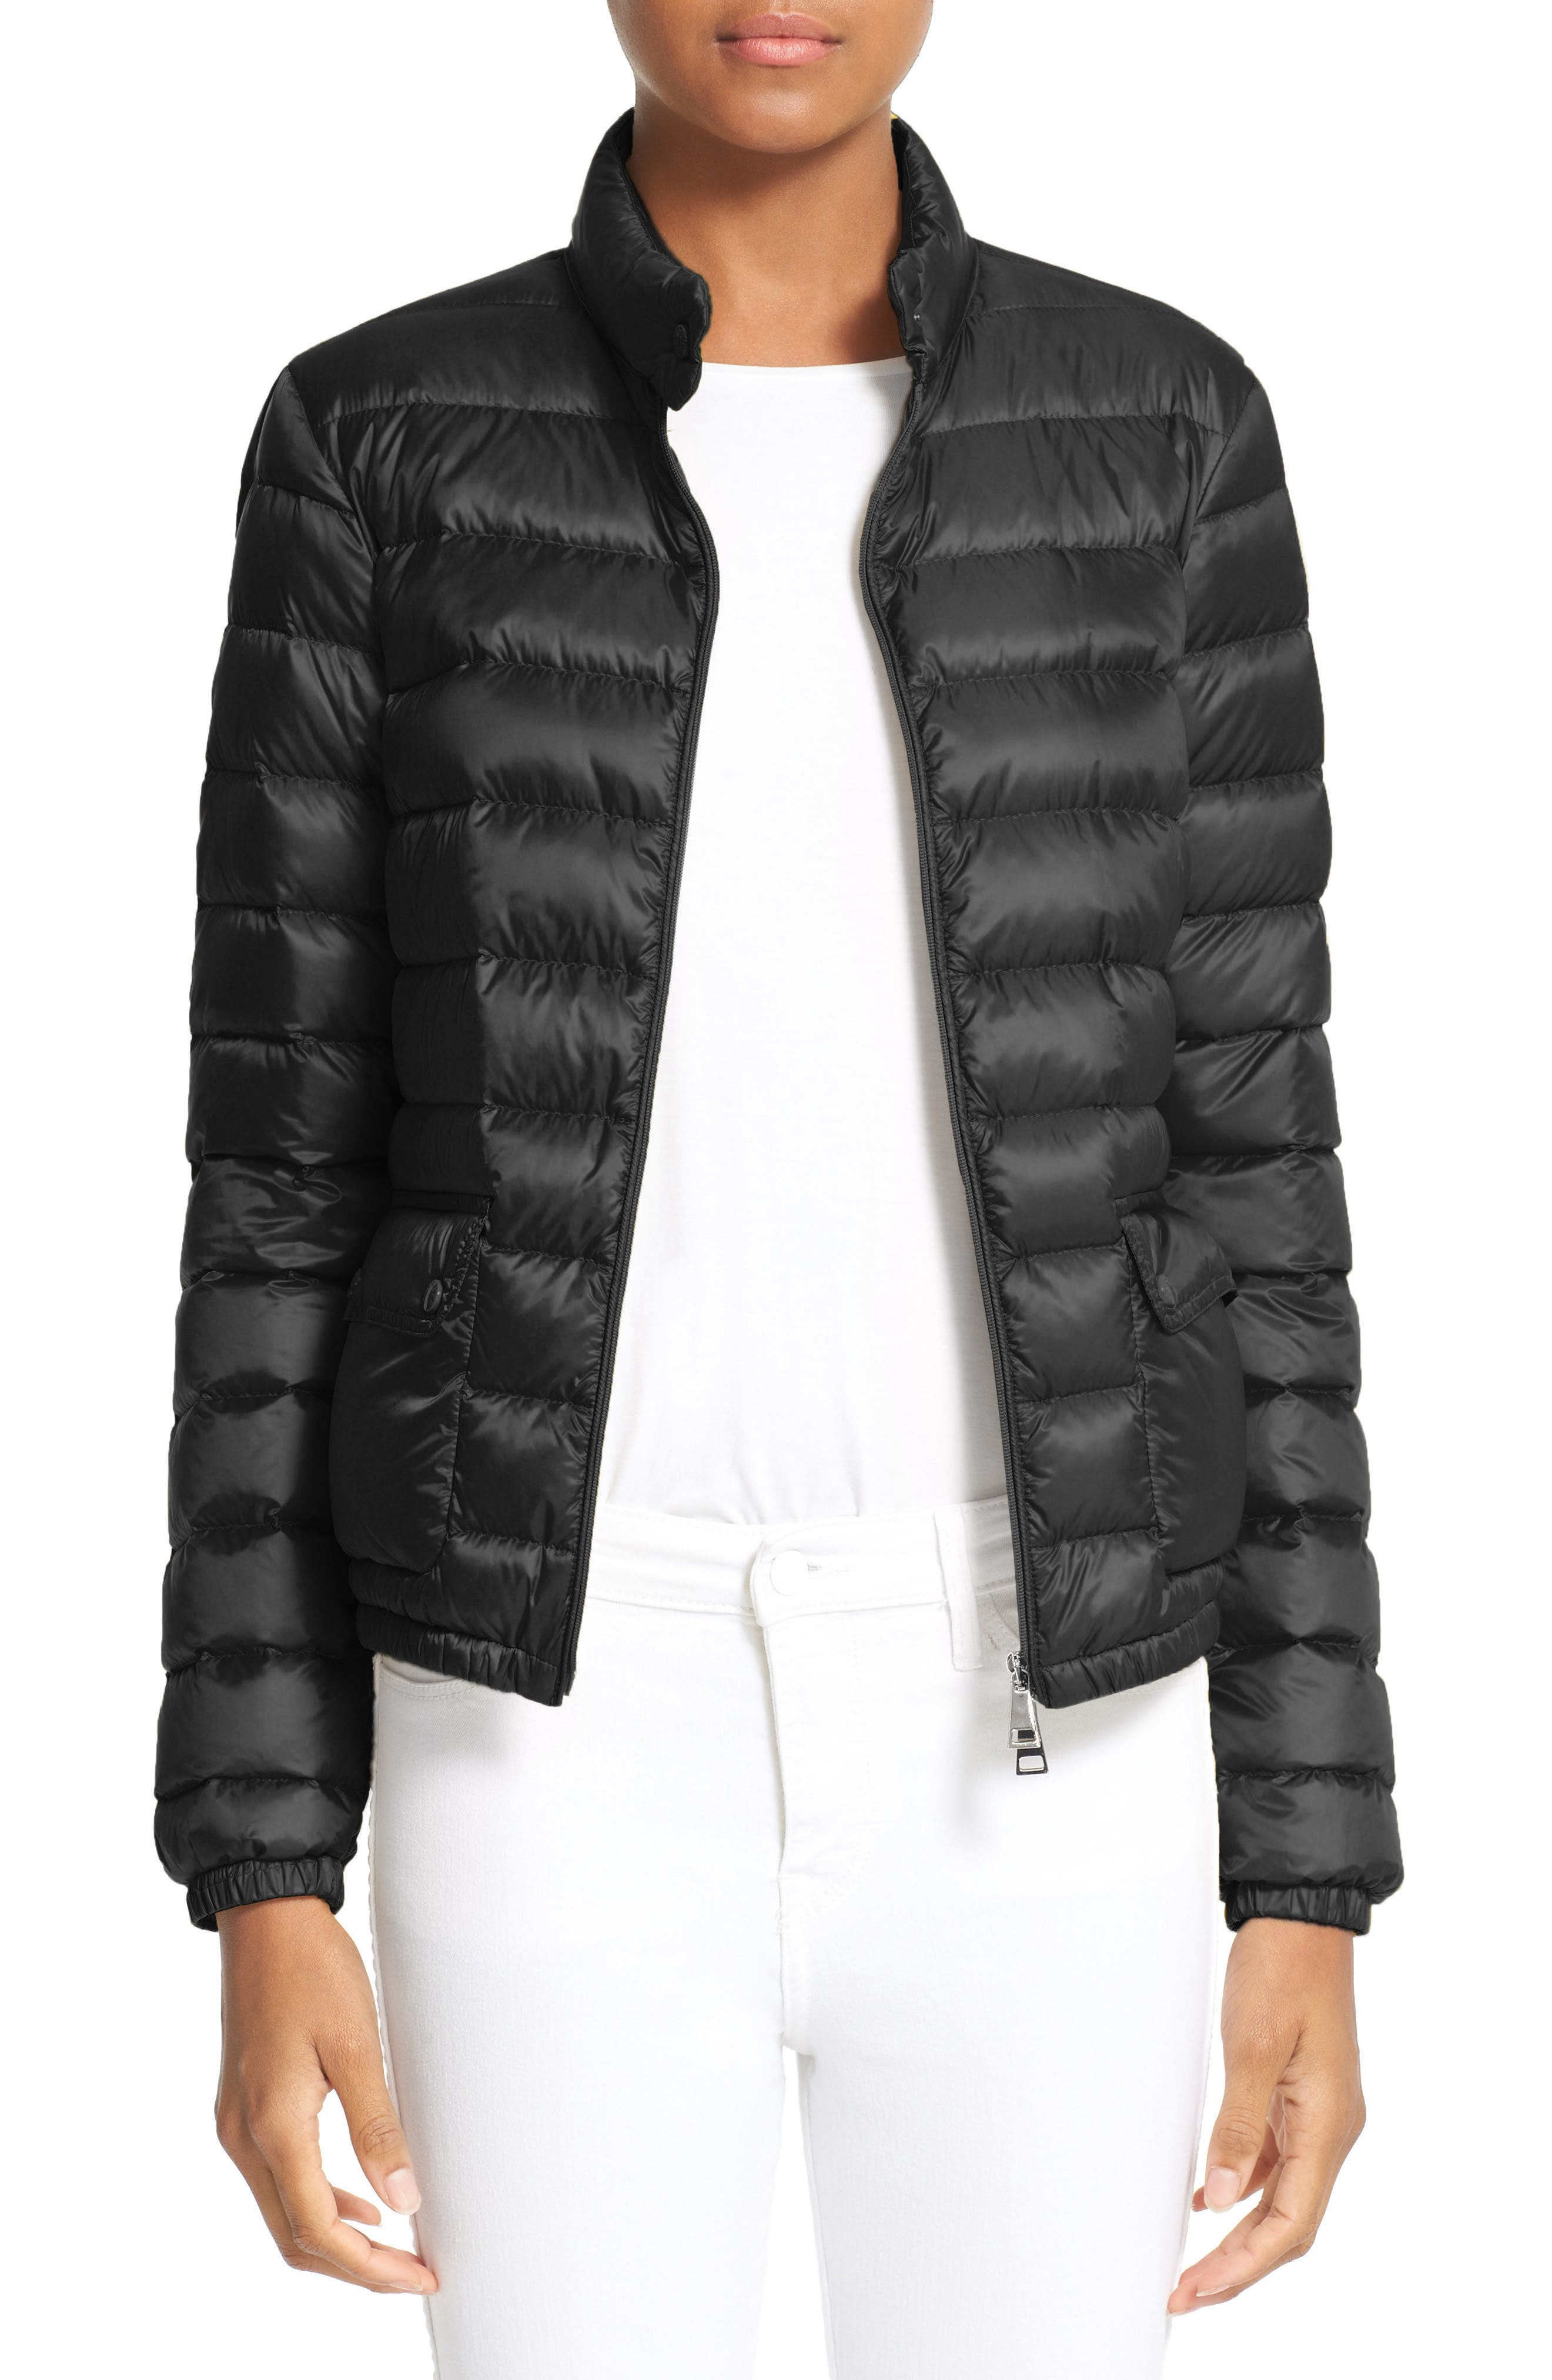 MONCLER, 'Lans' Water Resistant Short Down Jacket, Main thumbnail 1, color, 001